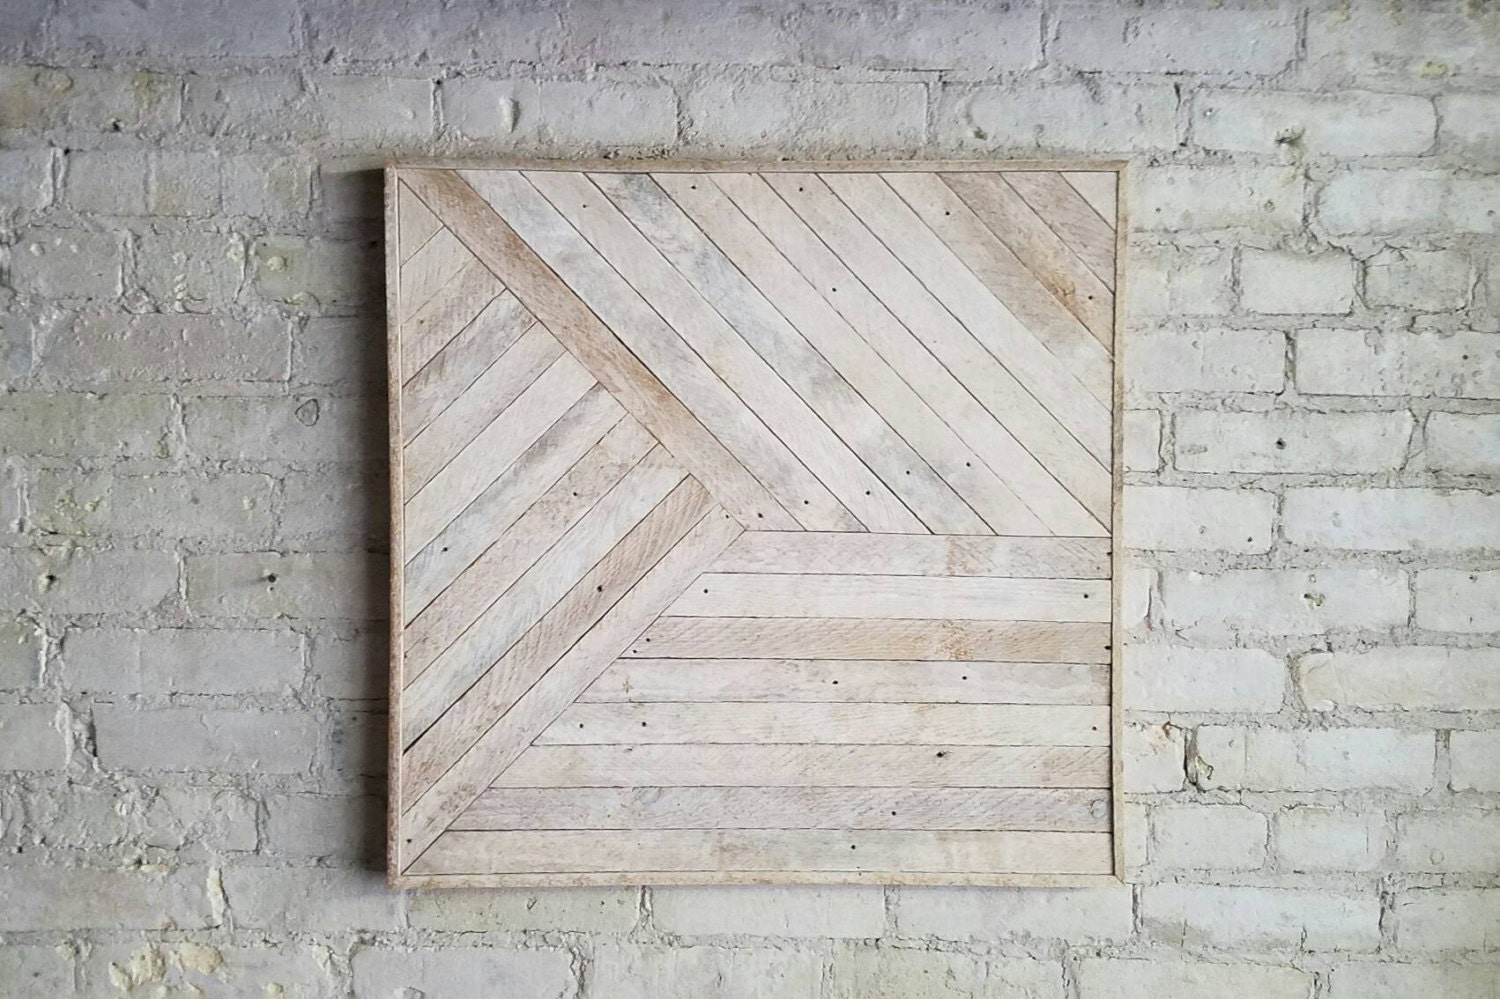 Reclaimed wood wall art decor lath pattern geometric zoom amipublicfo Choice Image